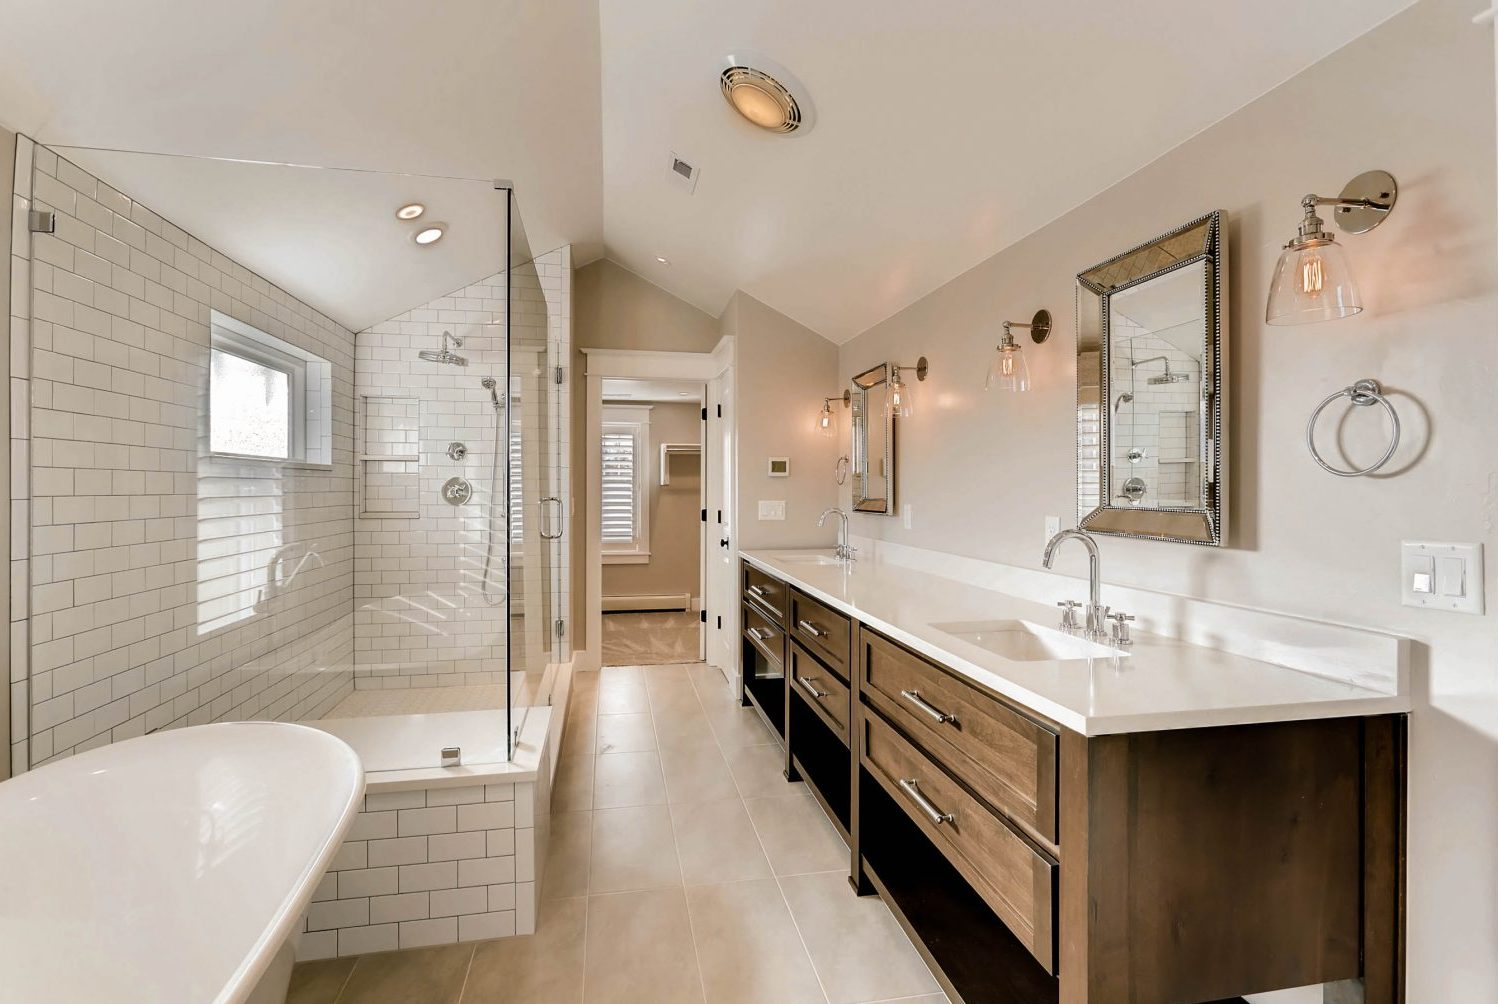 Remodeled master bathroom in historic Denver home designed by Godden Sudik architects with claw-foot tub and steam shower